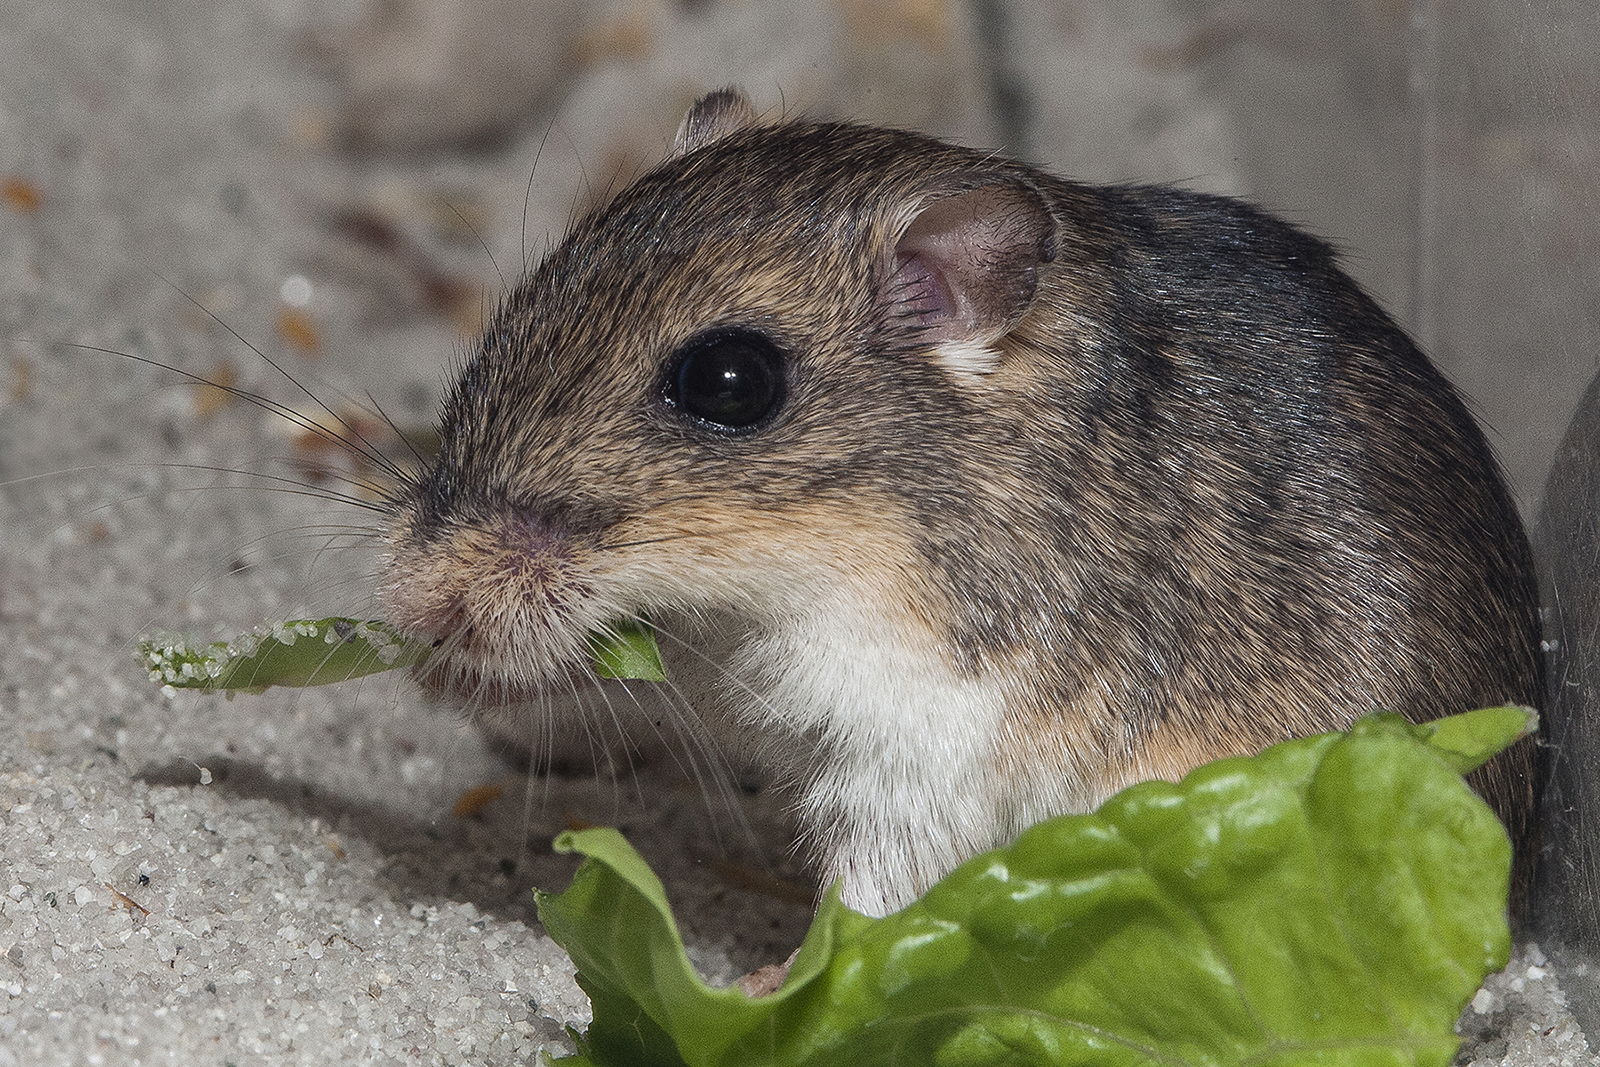 Pacific Pocket Mouse eating lettuce